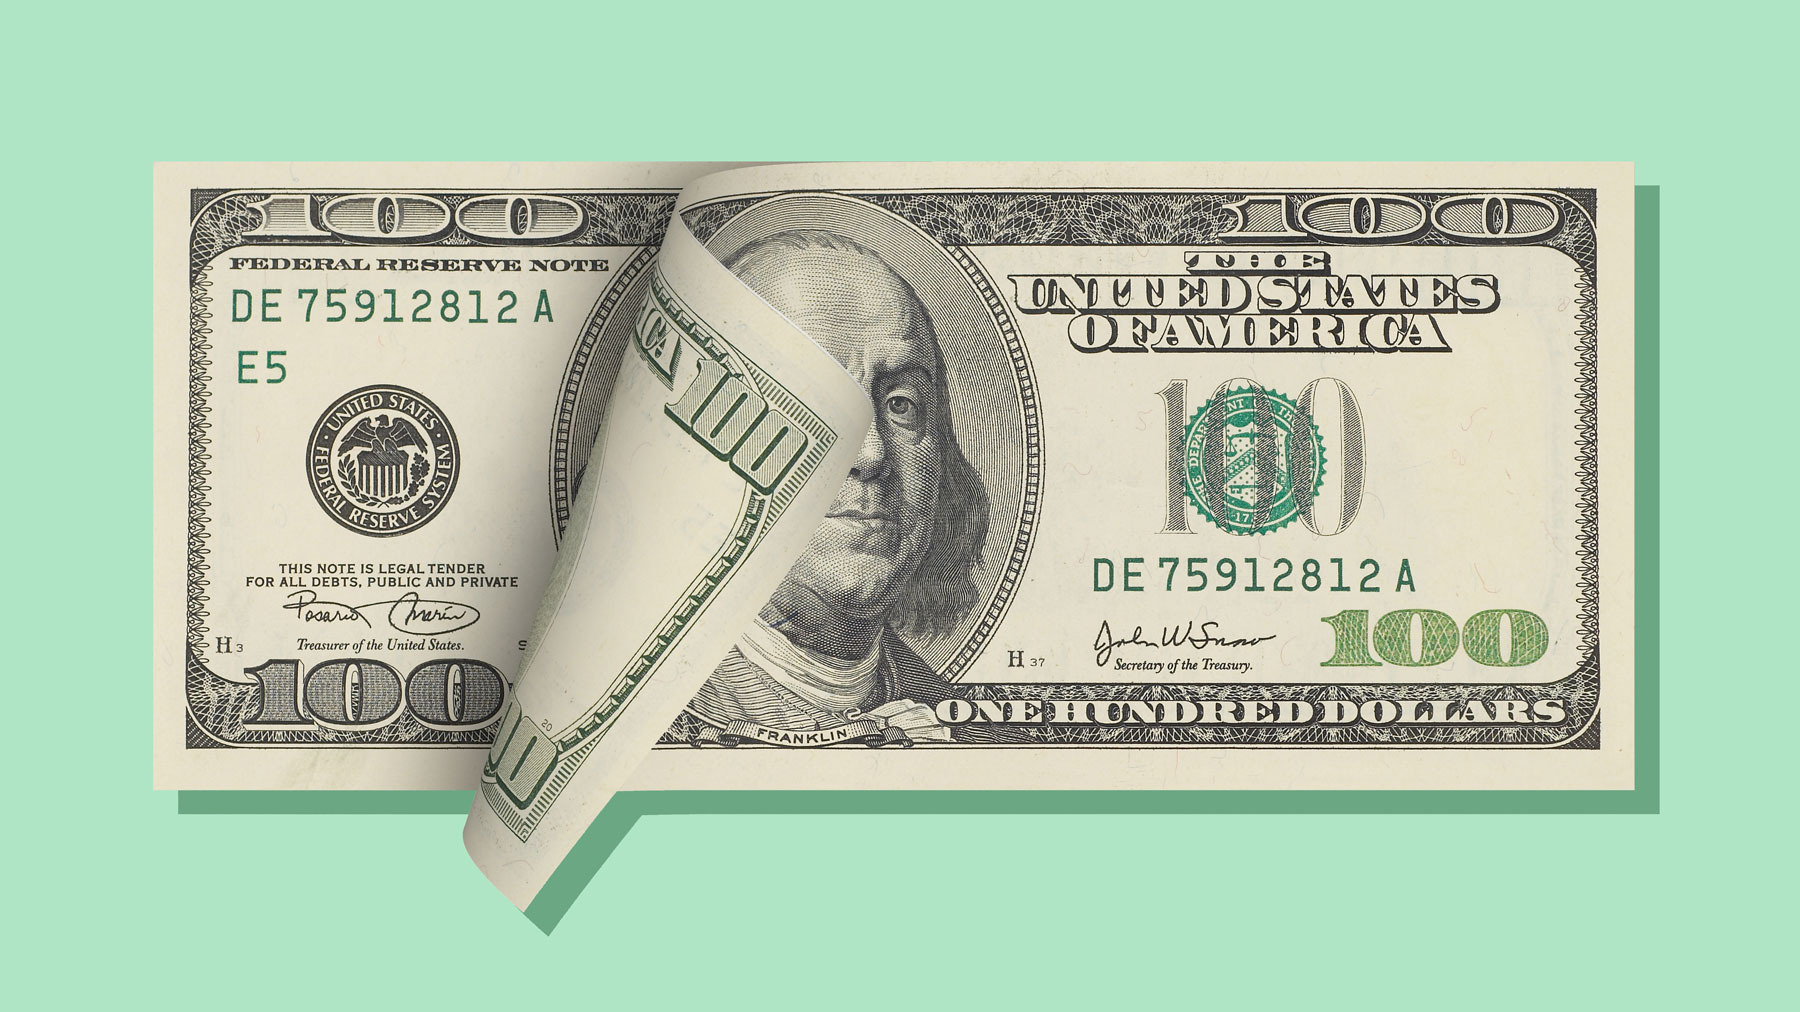 Coronavirus relief: What to know about the CARES act stimulus package and payments (dollar bill)